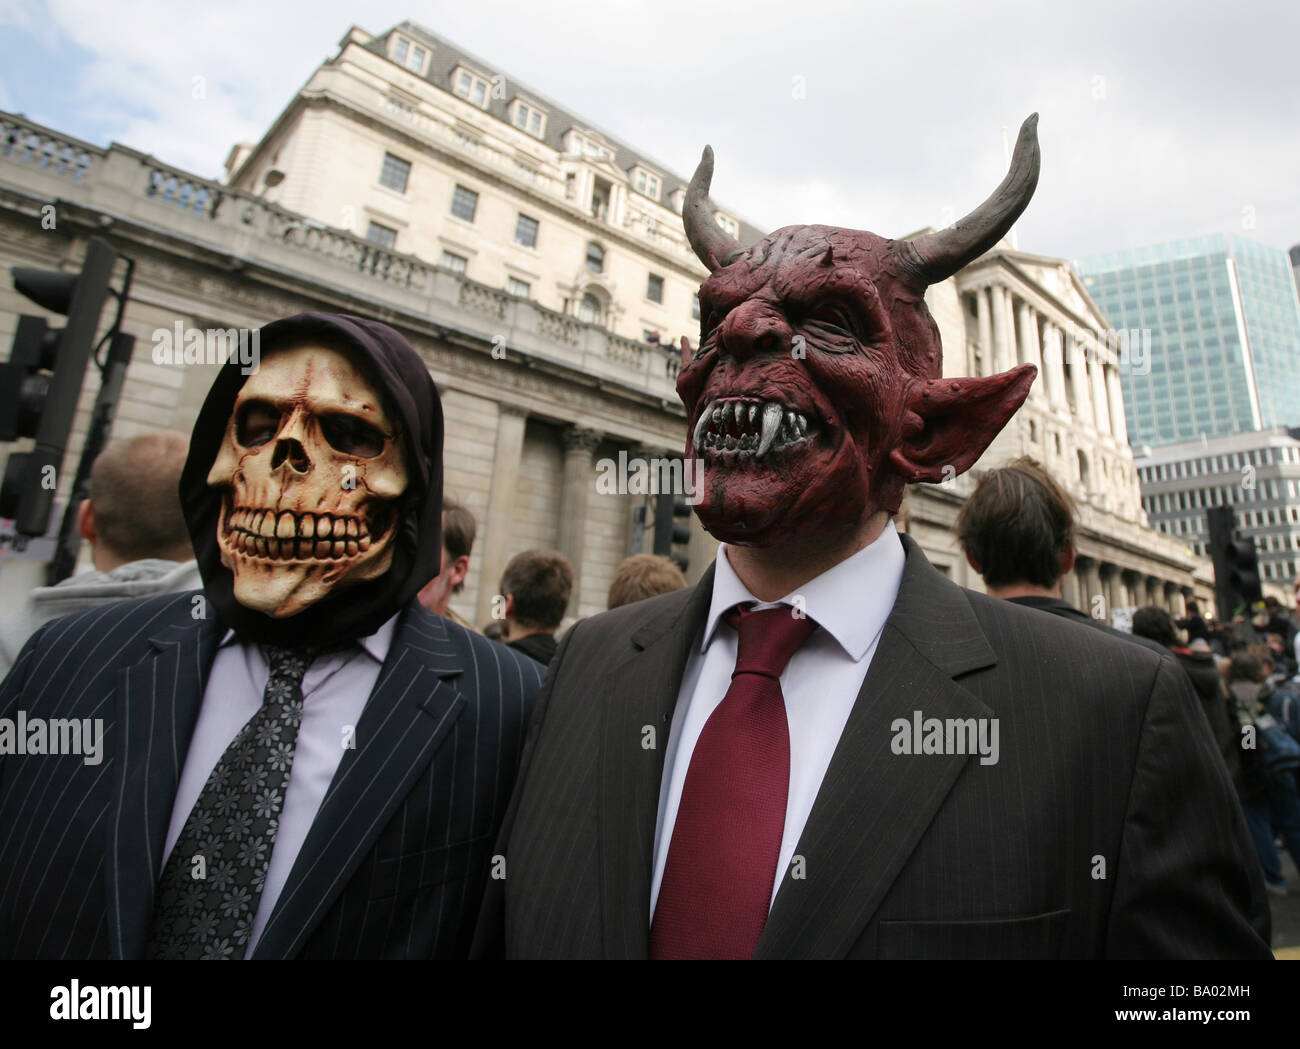 Anti-capitalist protesters outside the Bank of England, during the G20 summit, City of London, UK - Stock Image